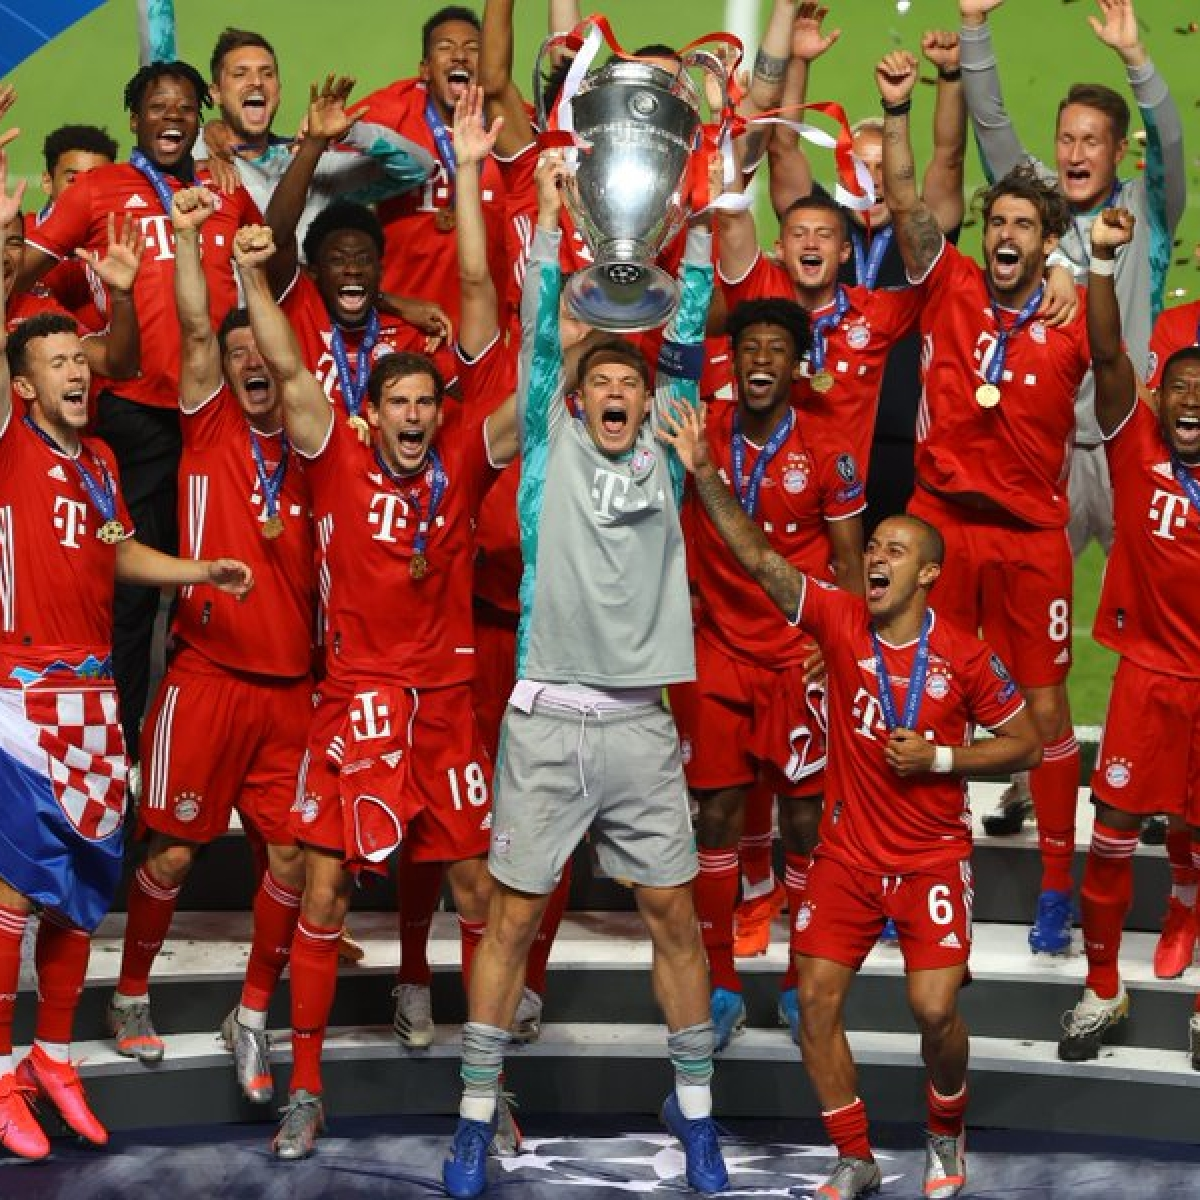 UEFA Champions League highlights: Bayern complete treble with 1-0 win over PSG in tournament finals - check out key stats from the game